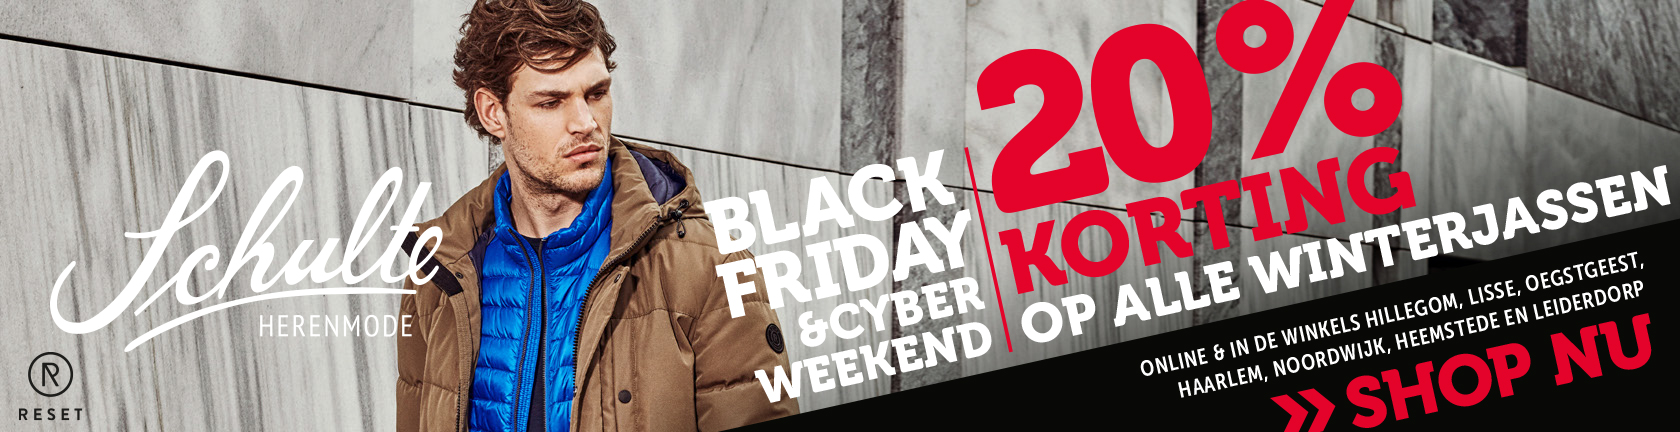 Schulte Herenmode Black Friday & Cyber weekend 20% korting op alle winterjassen. Shop nu